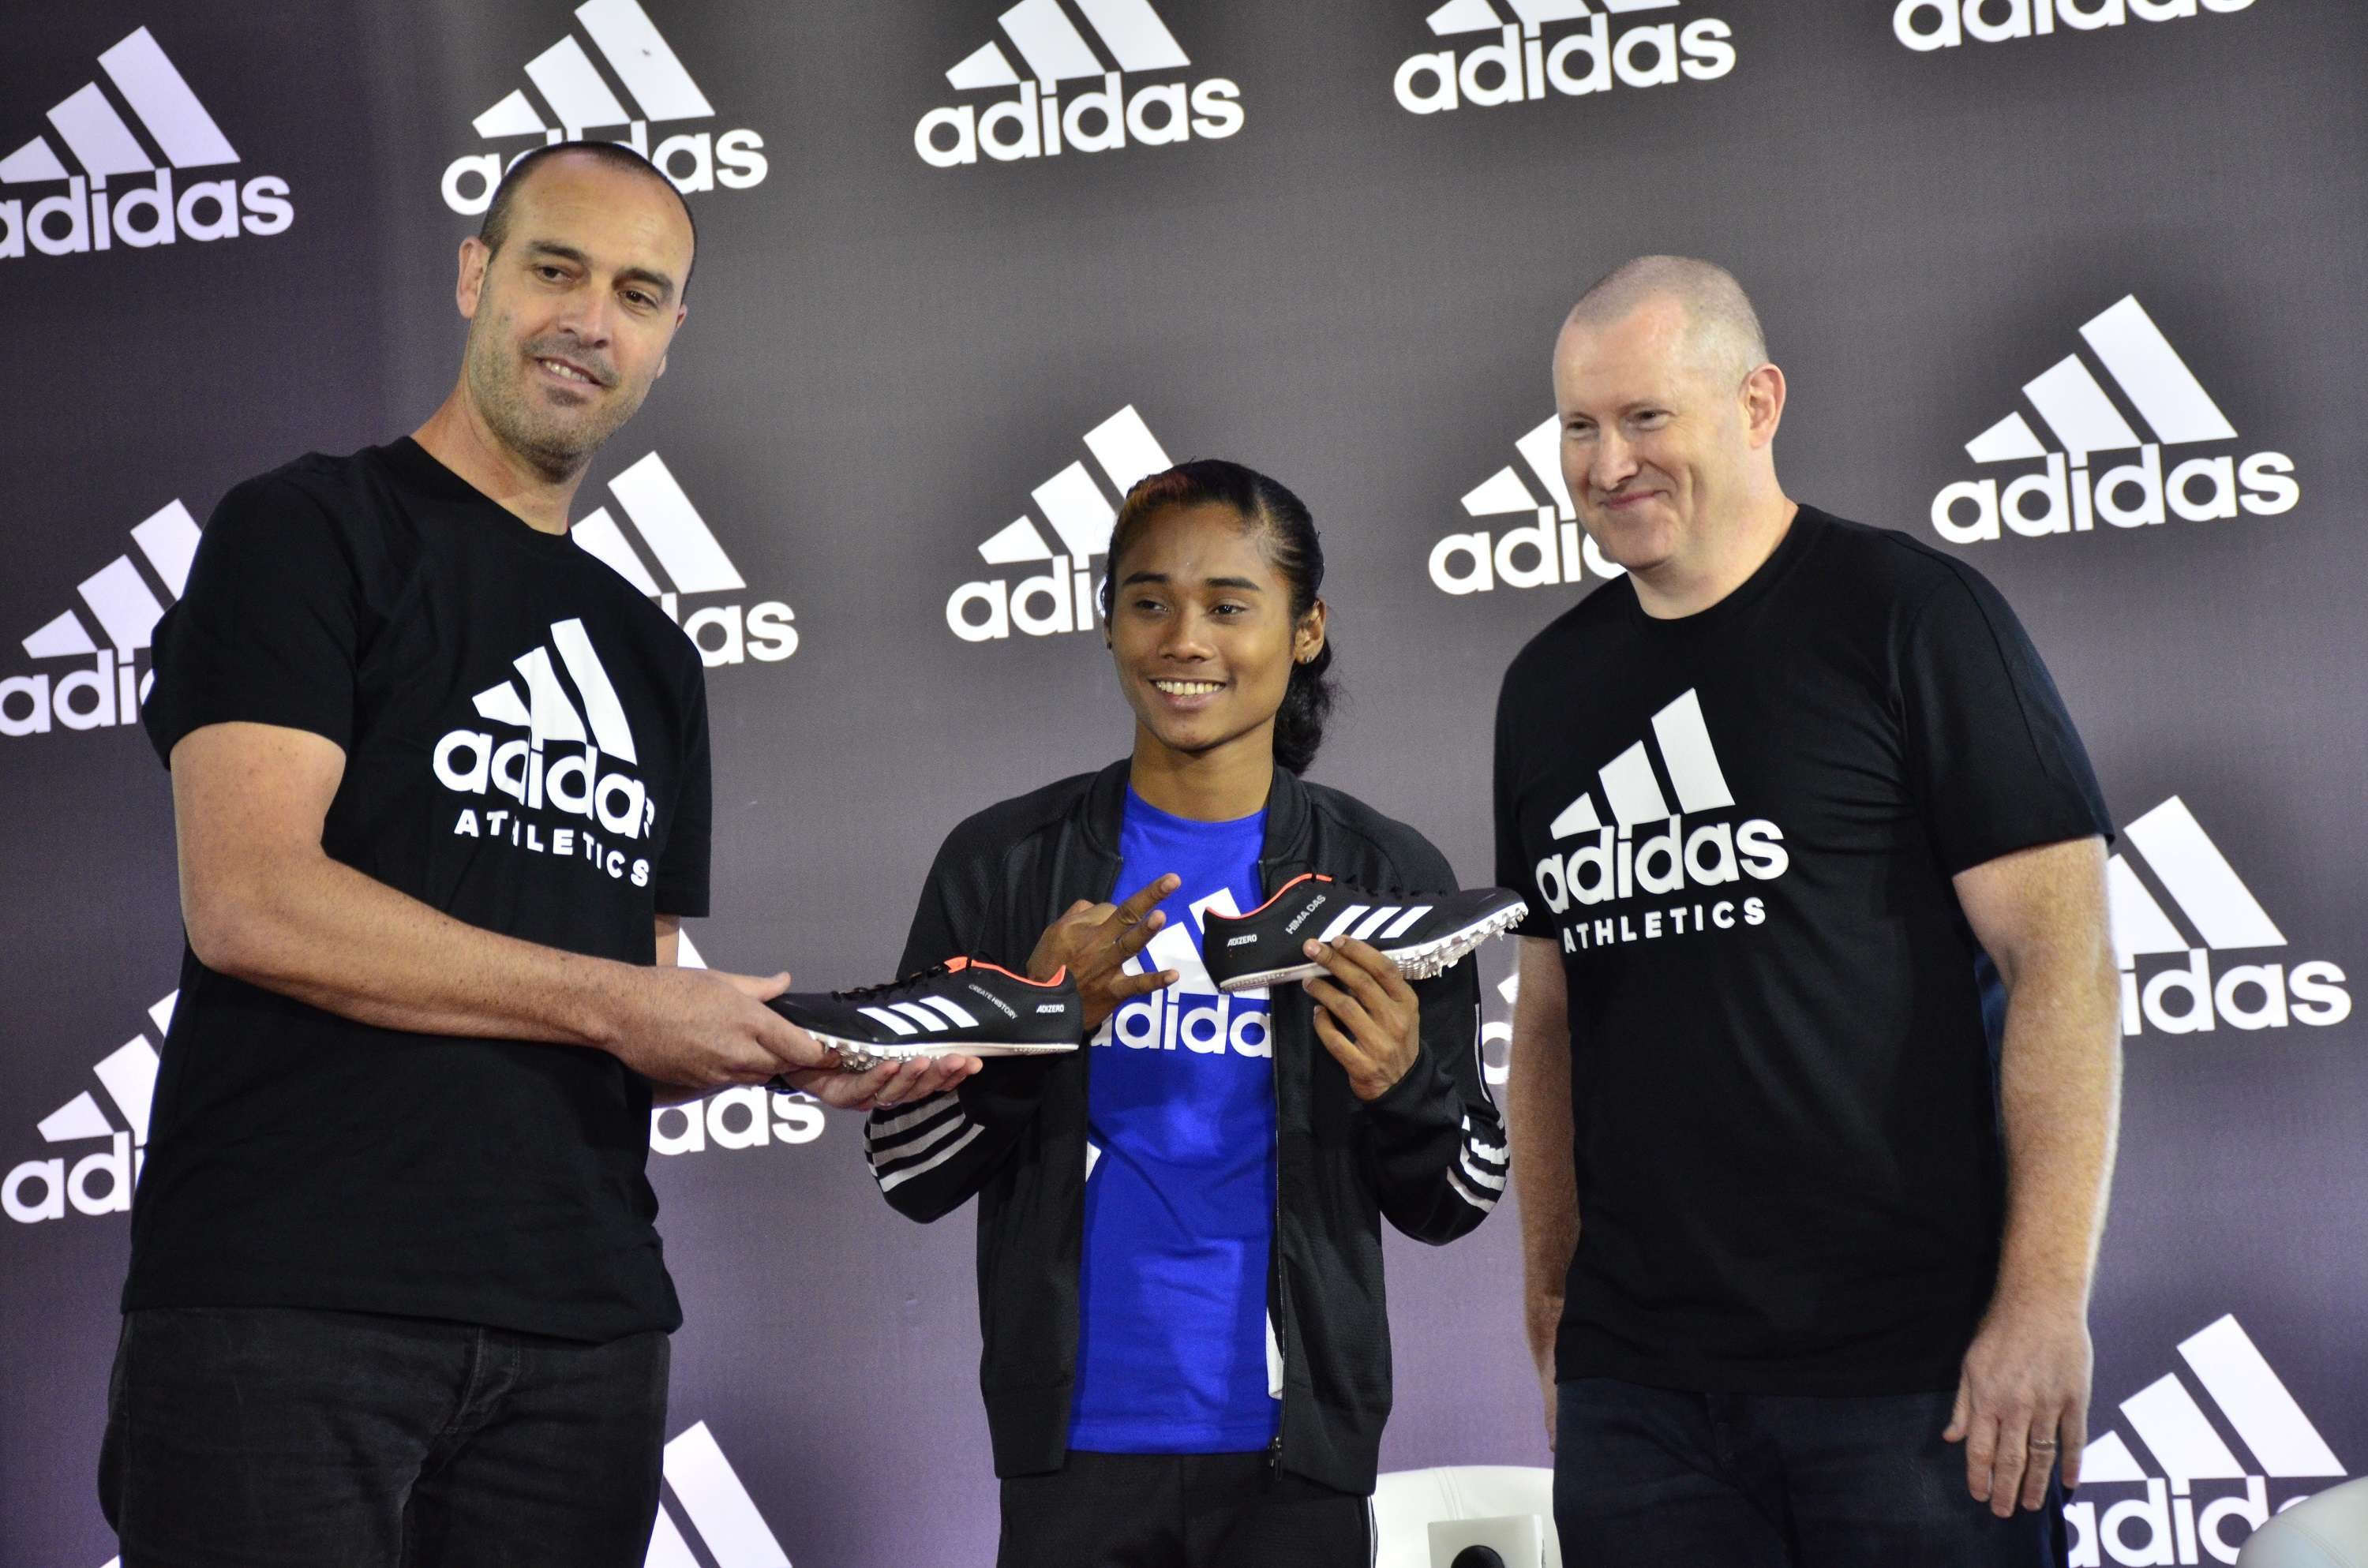 adidas  Adidas signs endorsement deal with athlete Hima Das 666a53b69